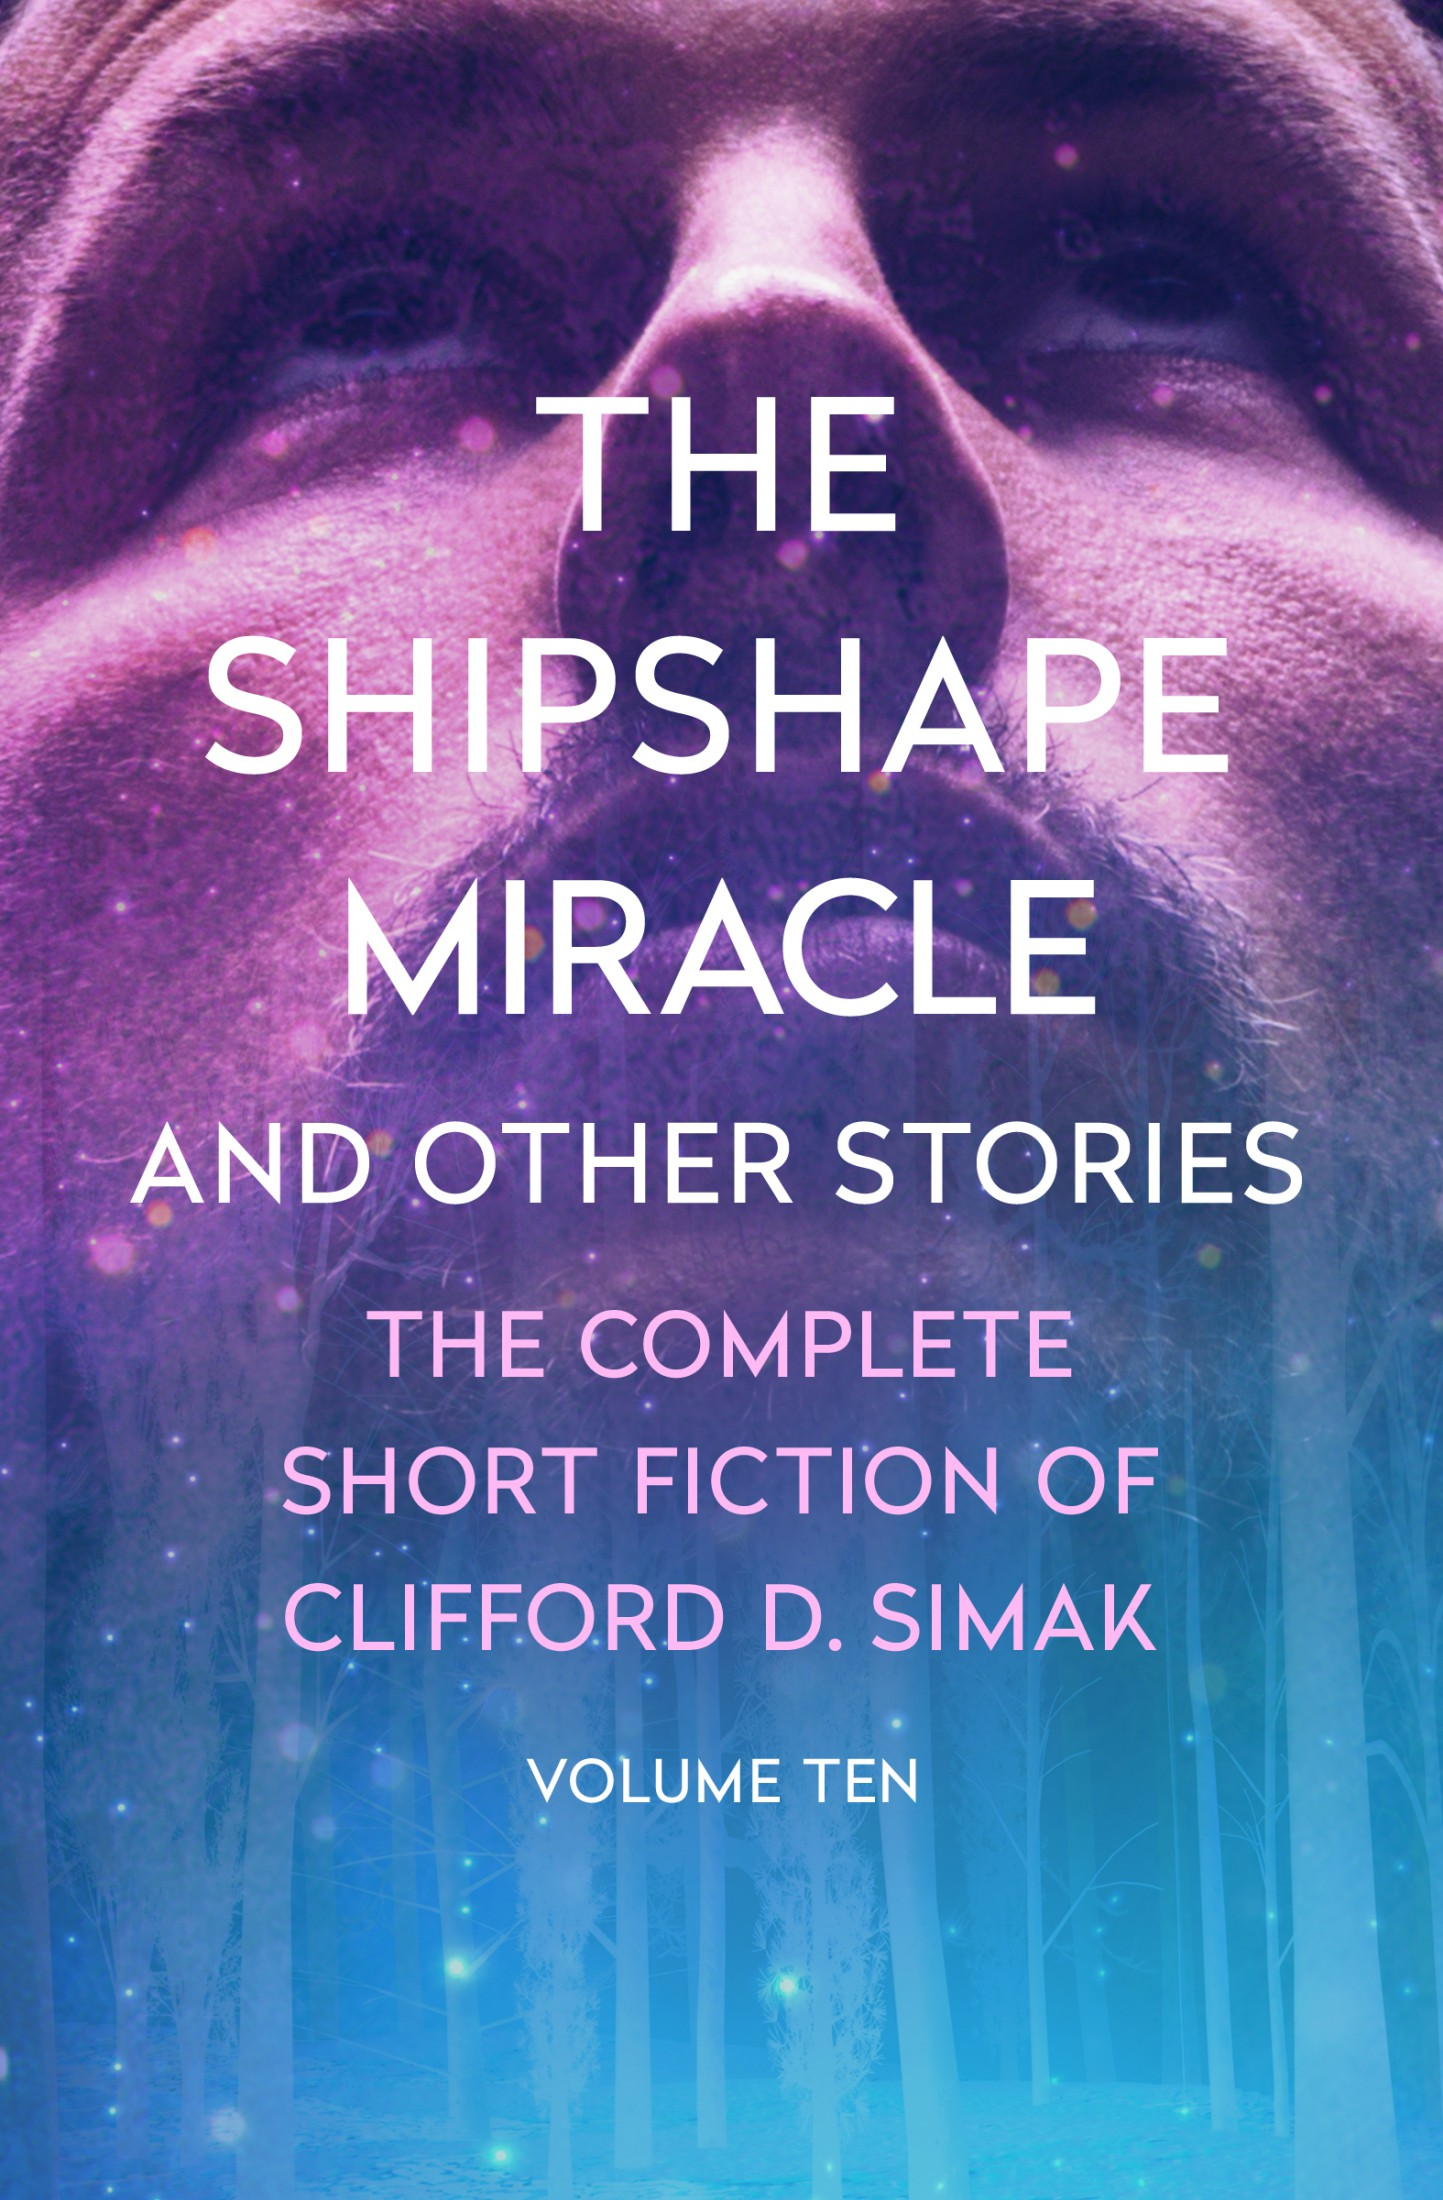 The Shipshape Miracle and Other Stories